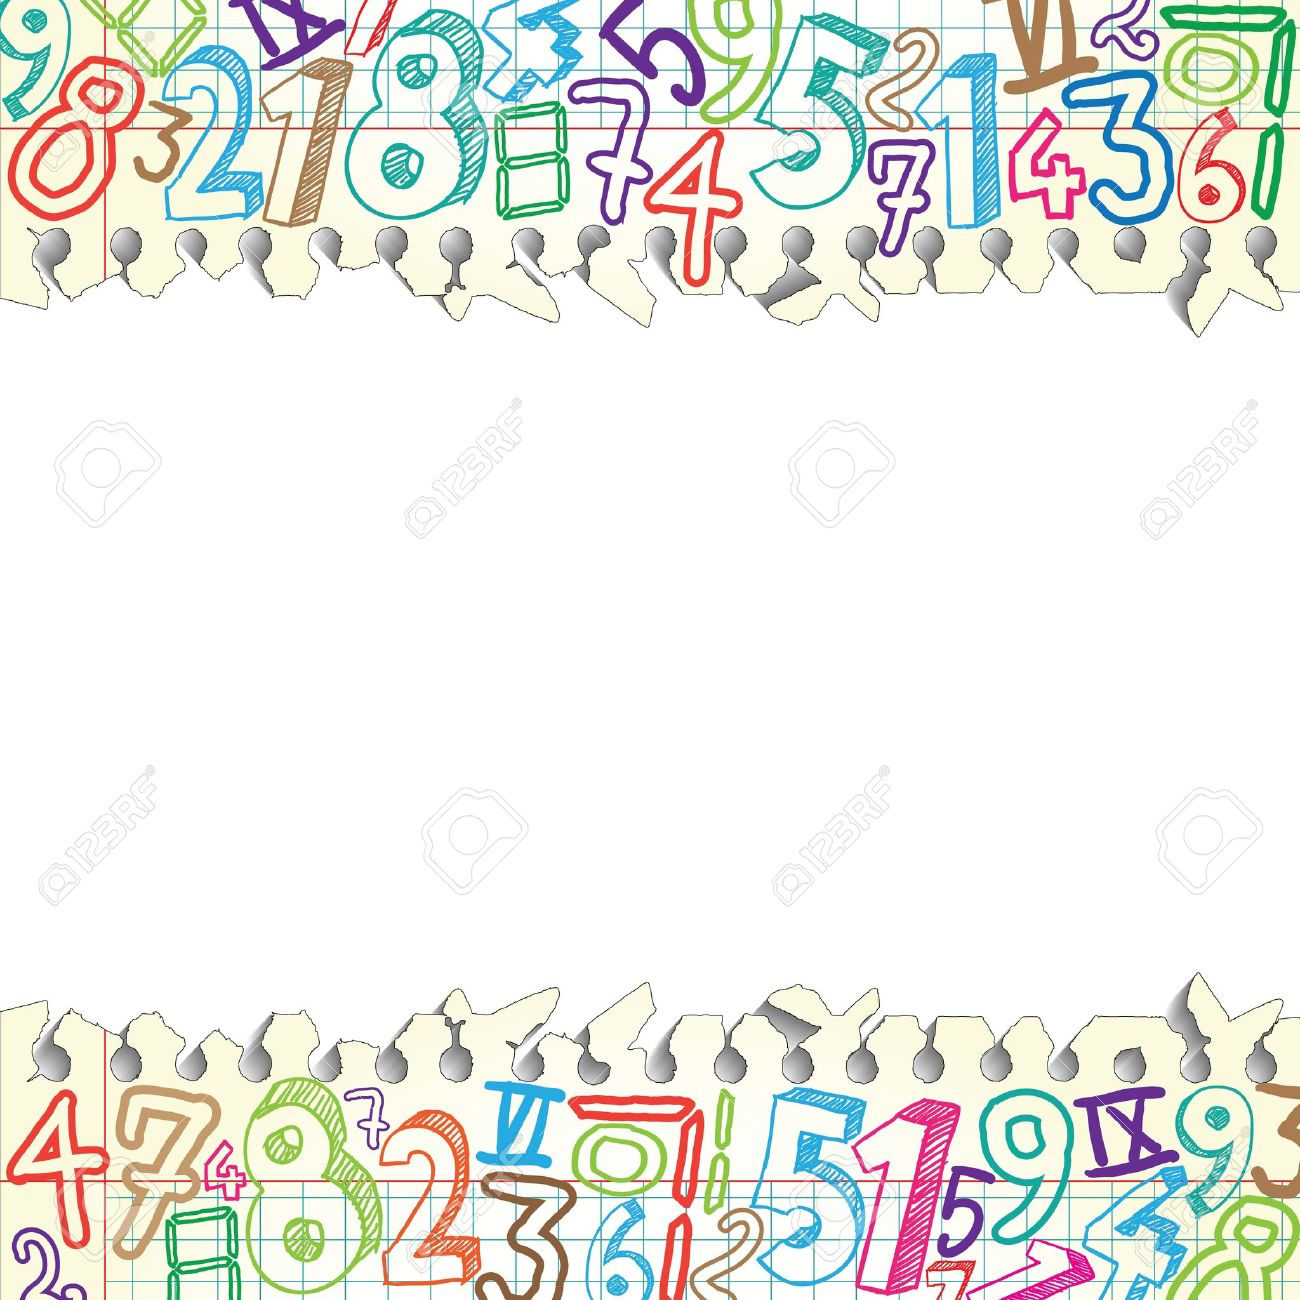 background made of papers with colorful numbers royalty free